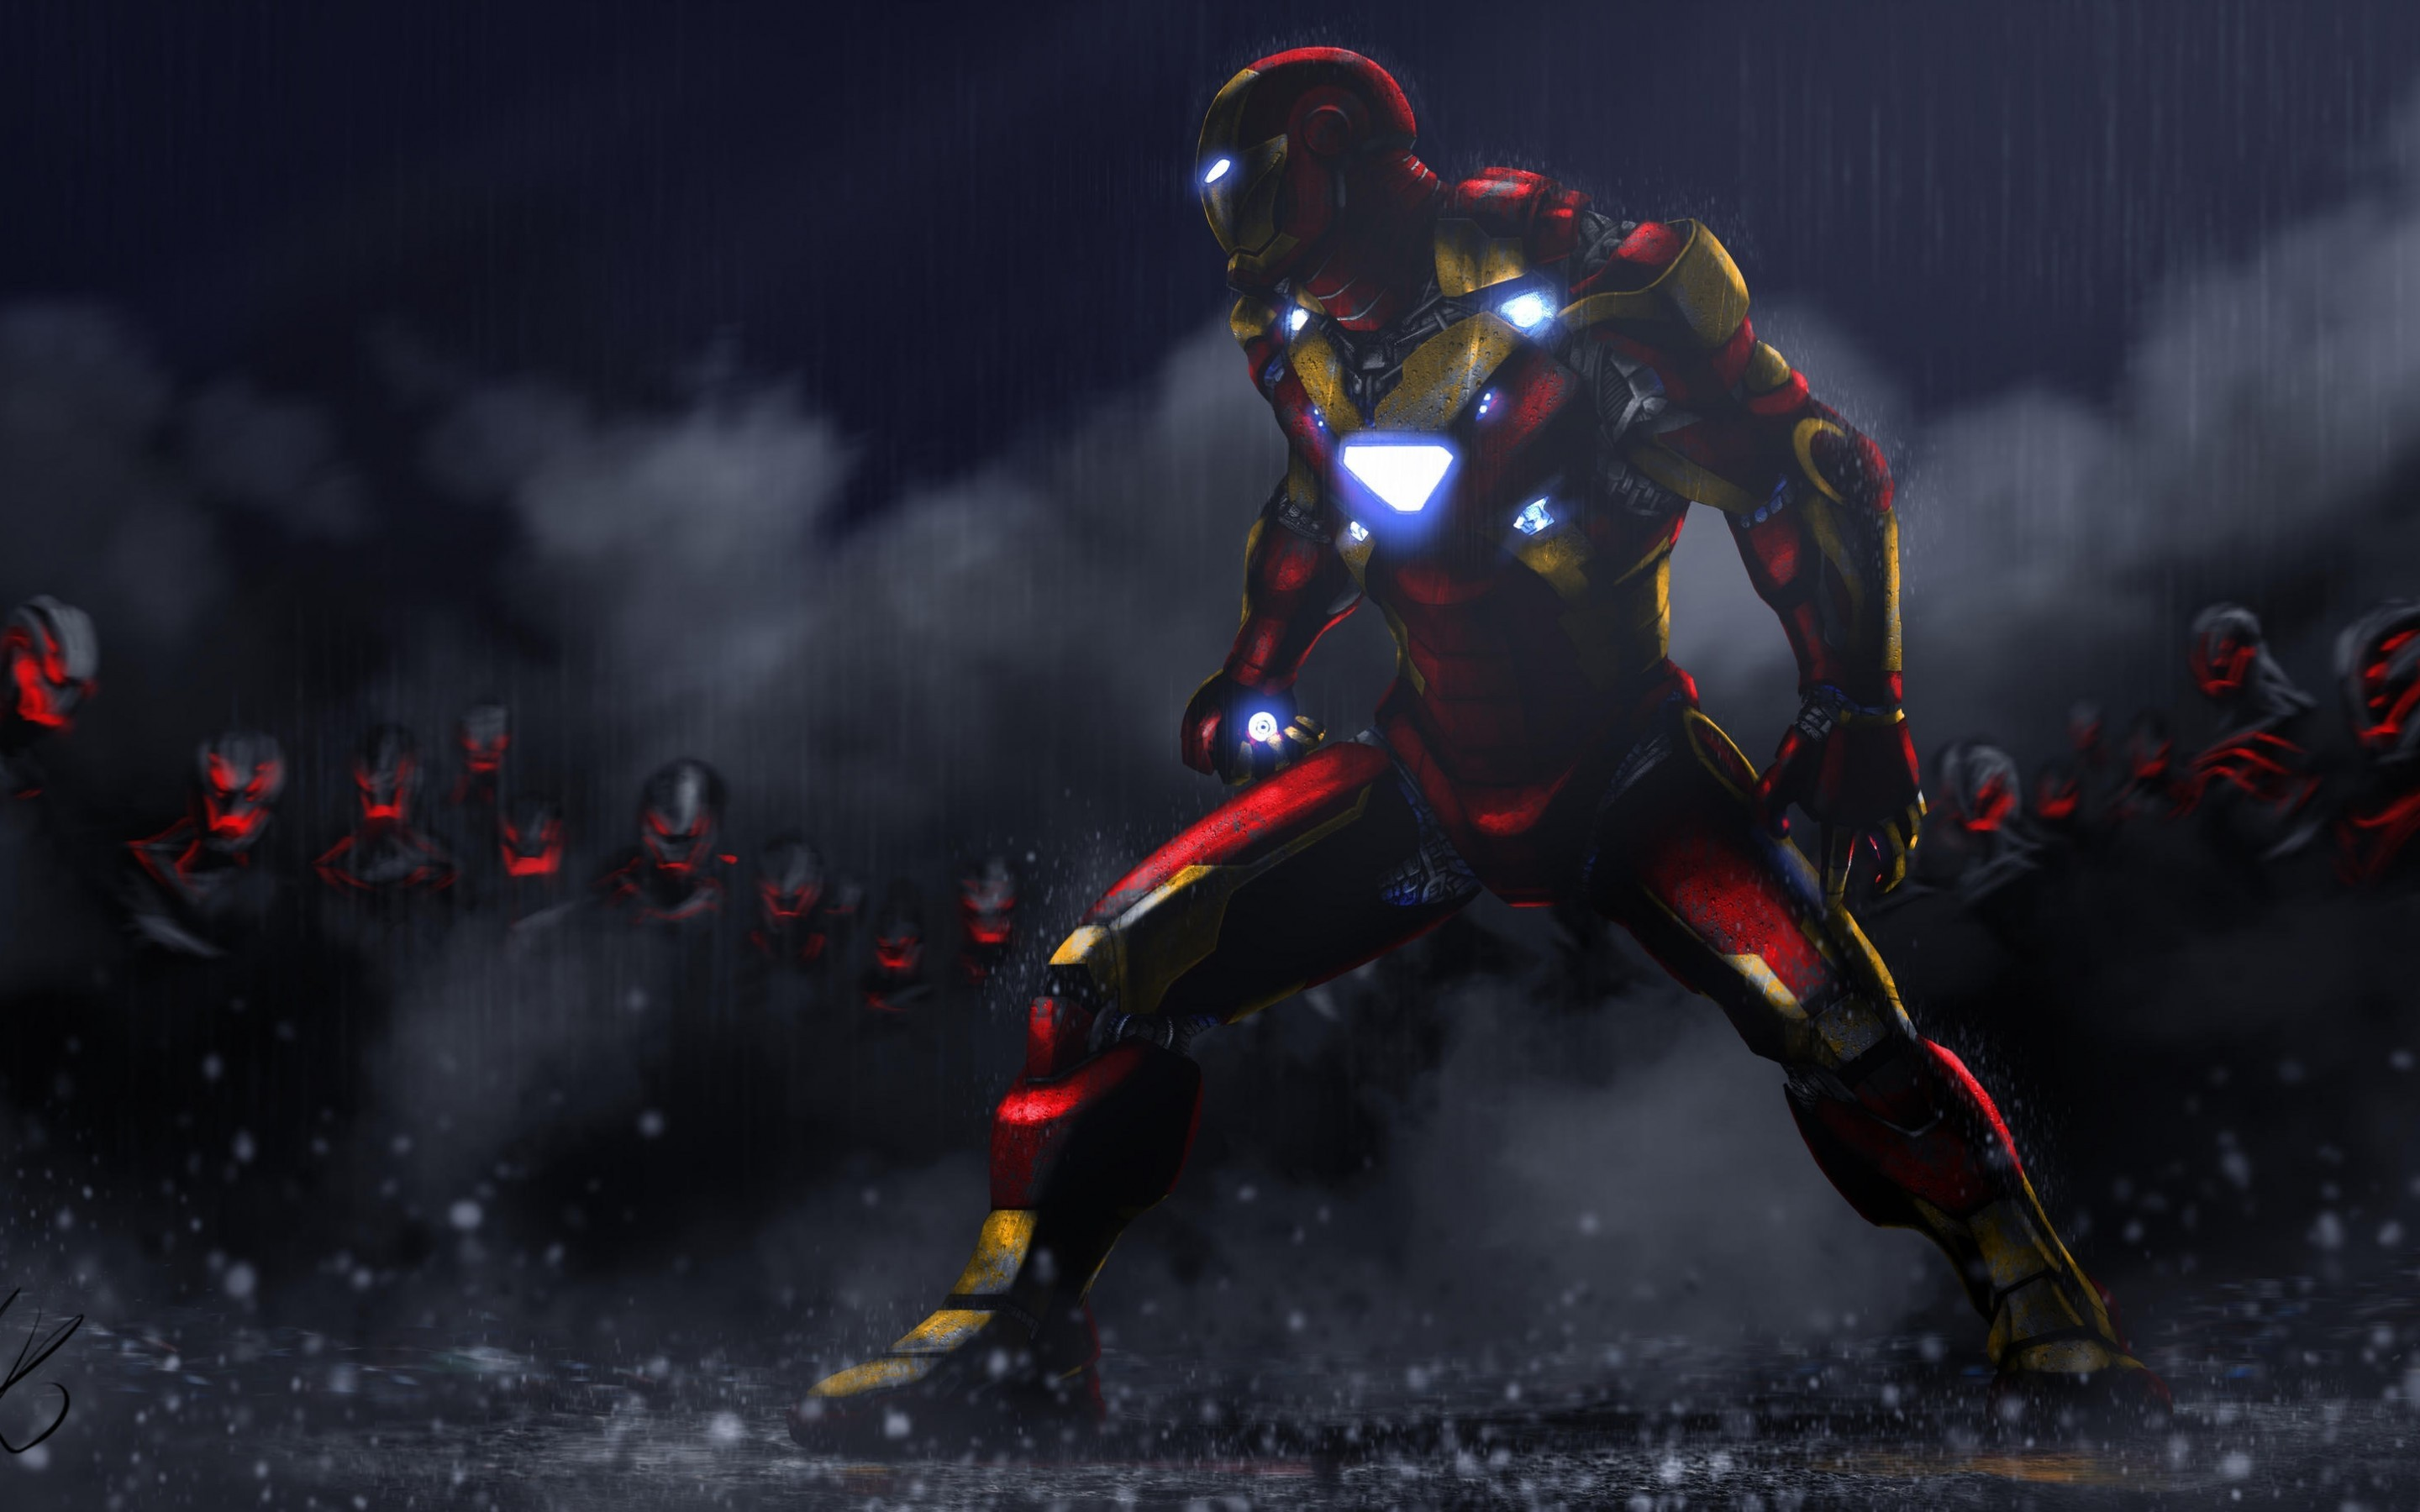 iron man hd images download